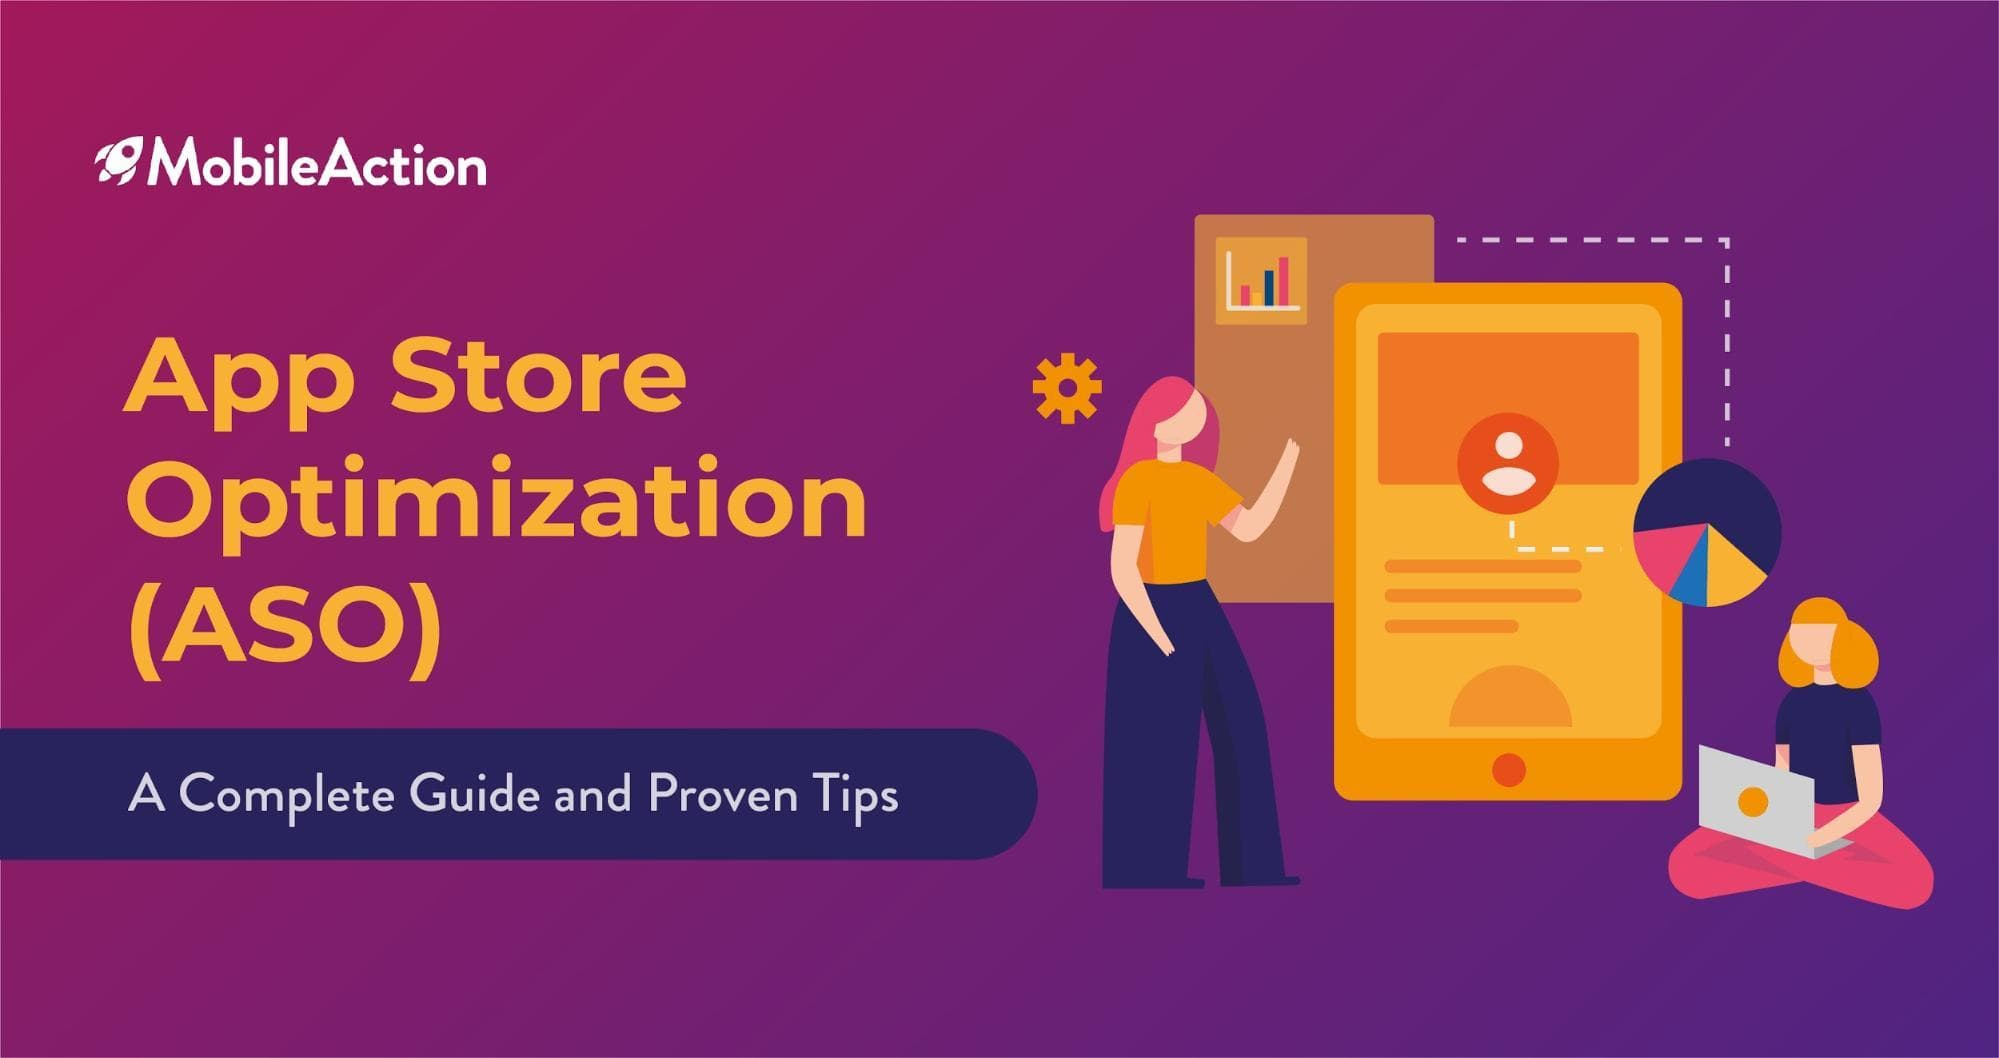 MobileAction's ASO App Store Optimization Guide